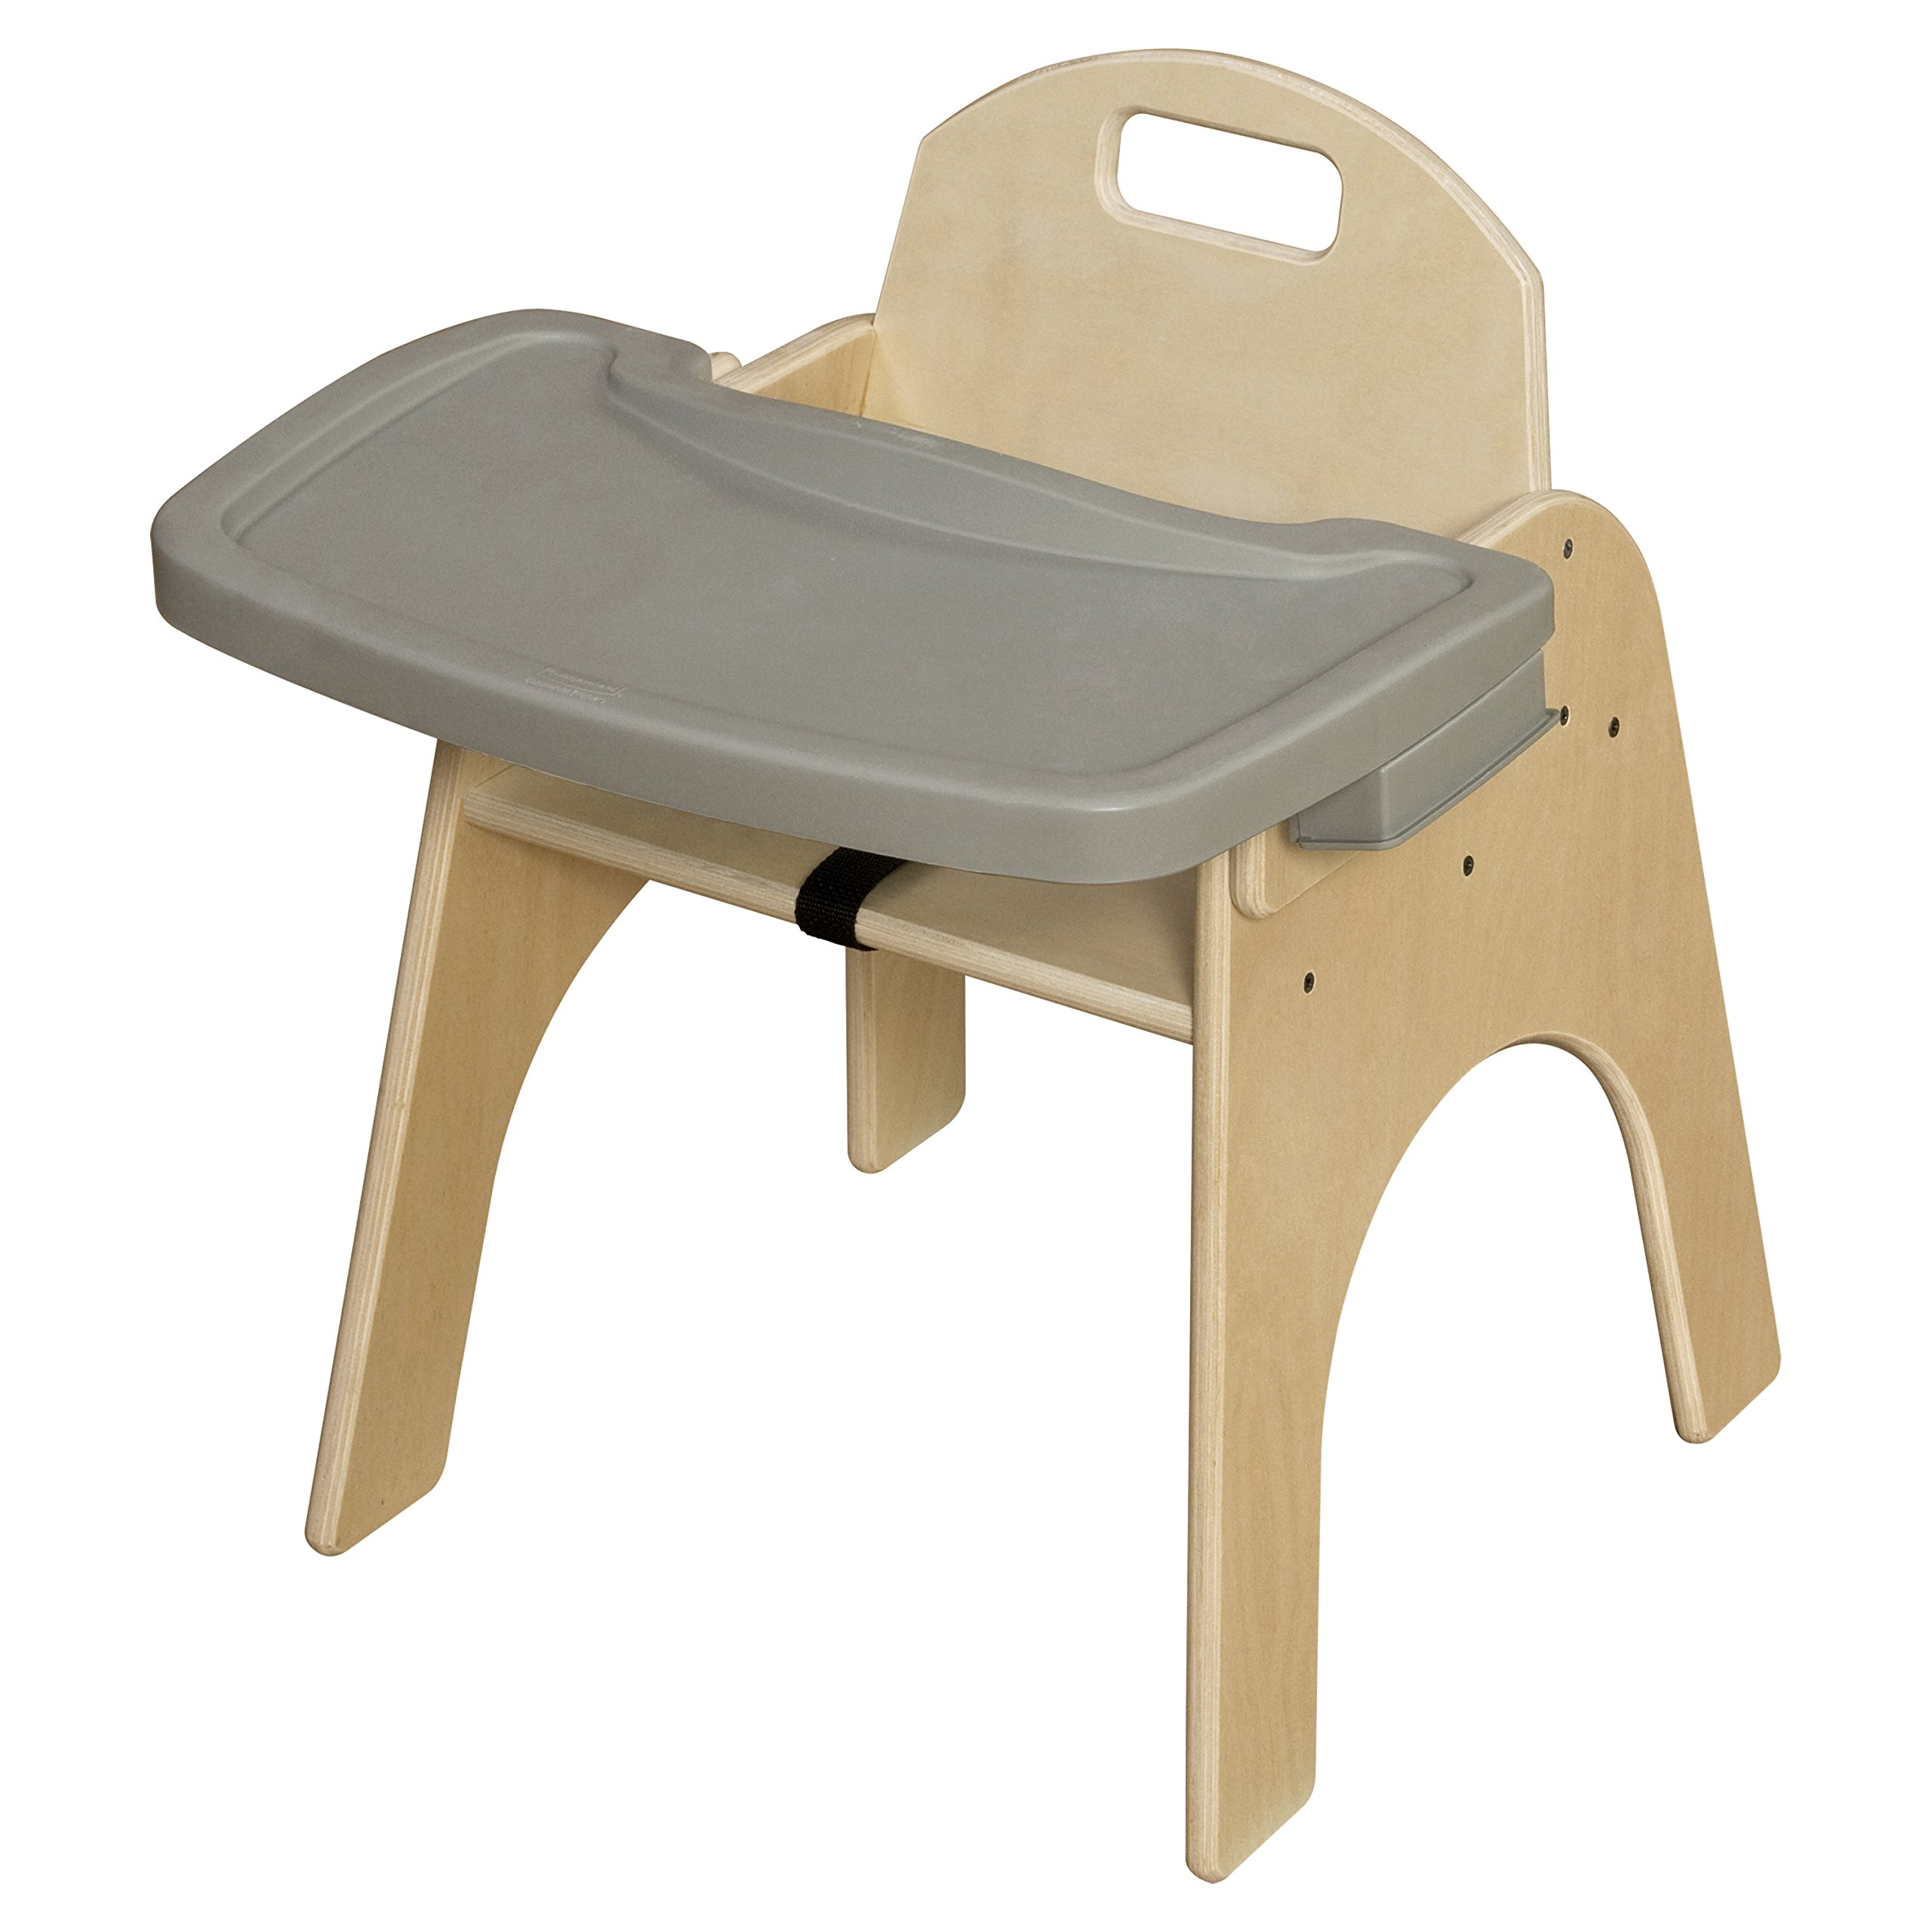 Wood Designs Stackable Woodie Kids Chair with Adjustable Tray, 13'' High Seat by Wood Designs (Image #1)